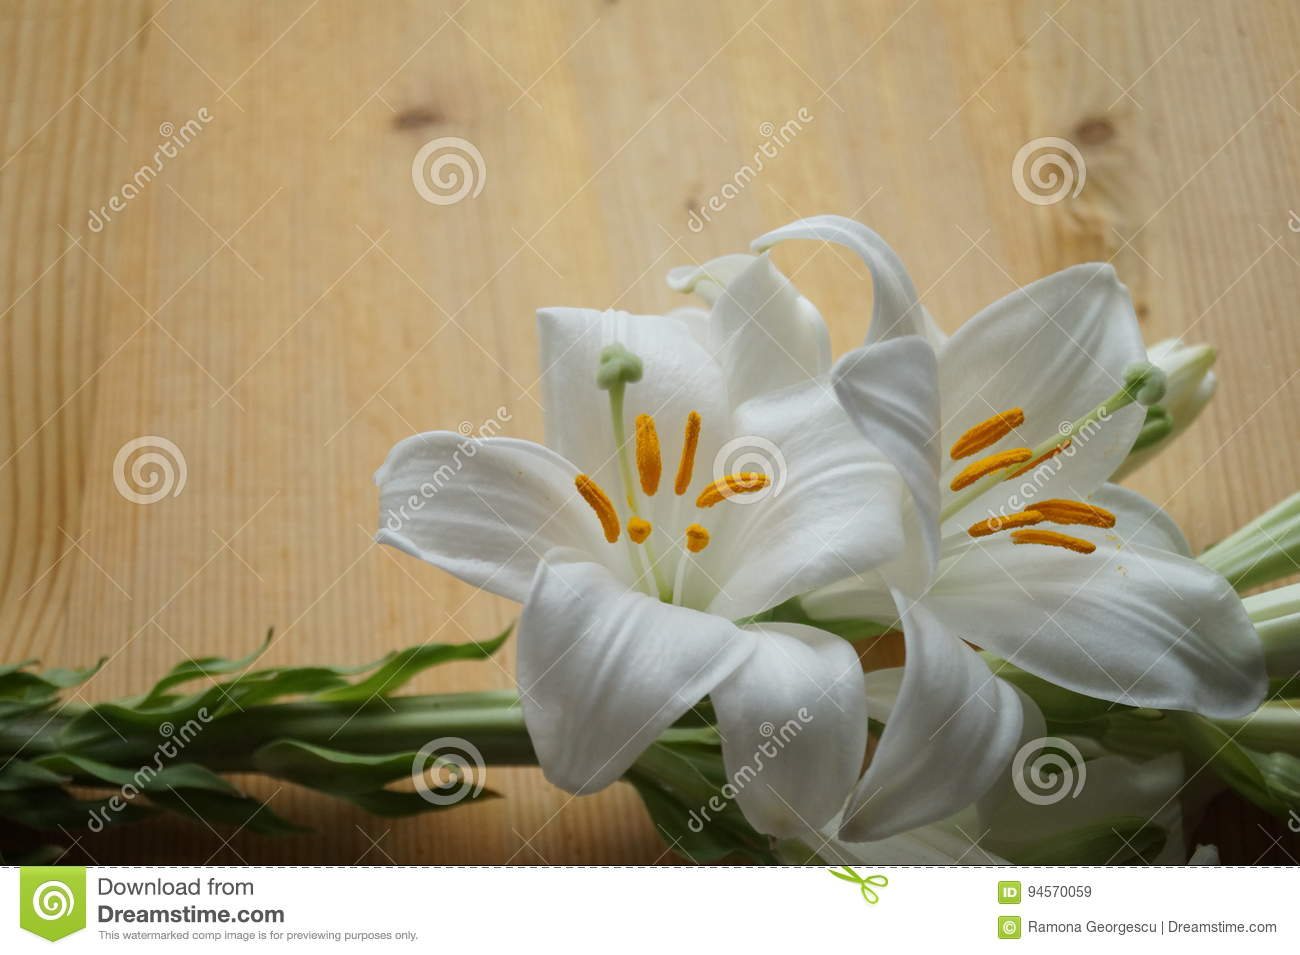 White madonna lily flower stock image image of botany 94570059 white madonna lily flower botany delicate royalty free stock photo download white madonna lily flower izmirmasajfo